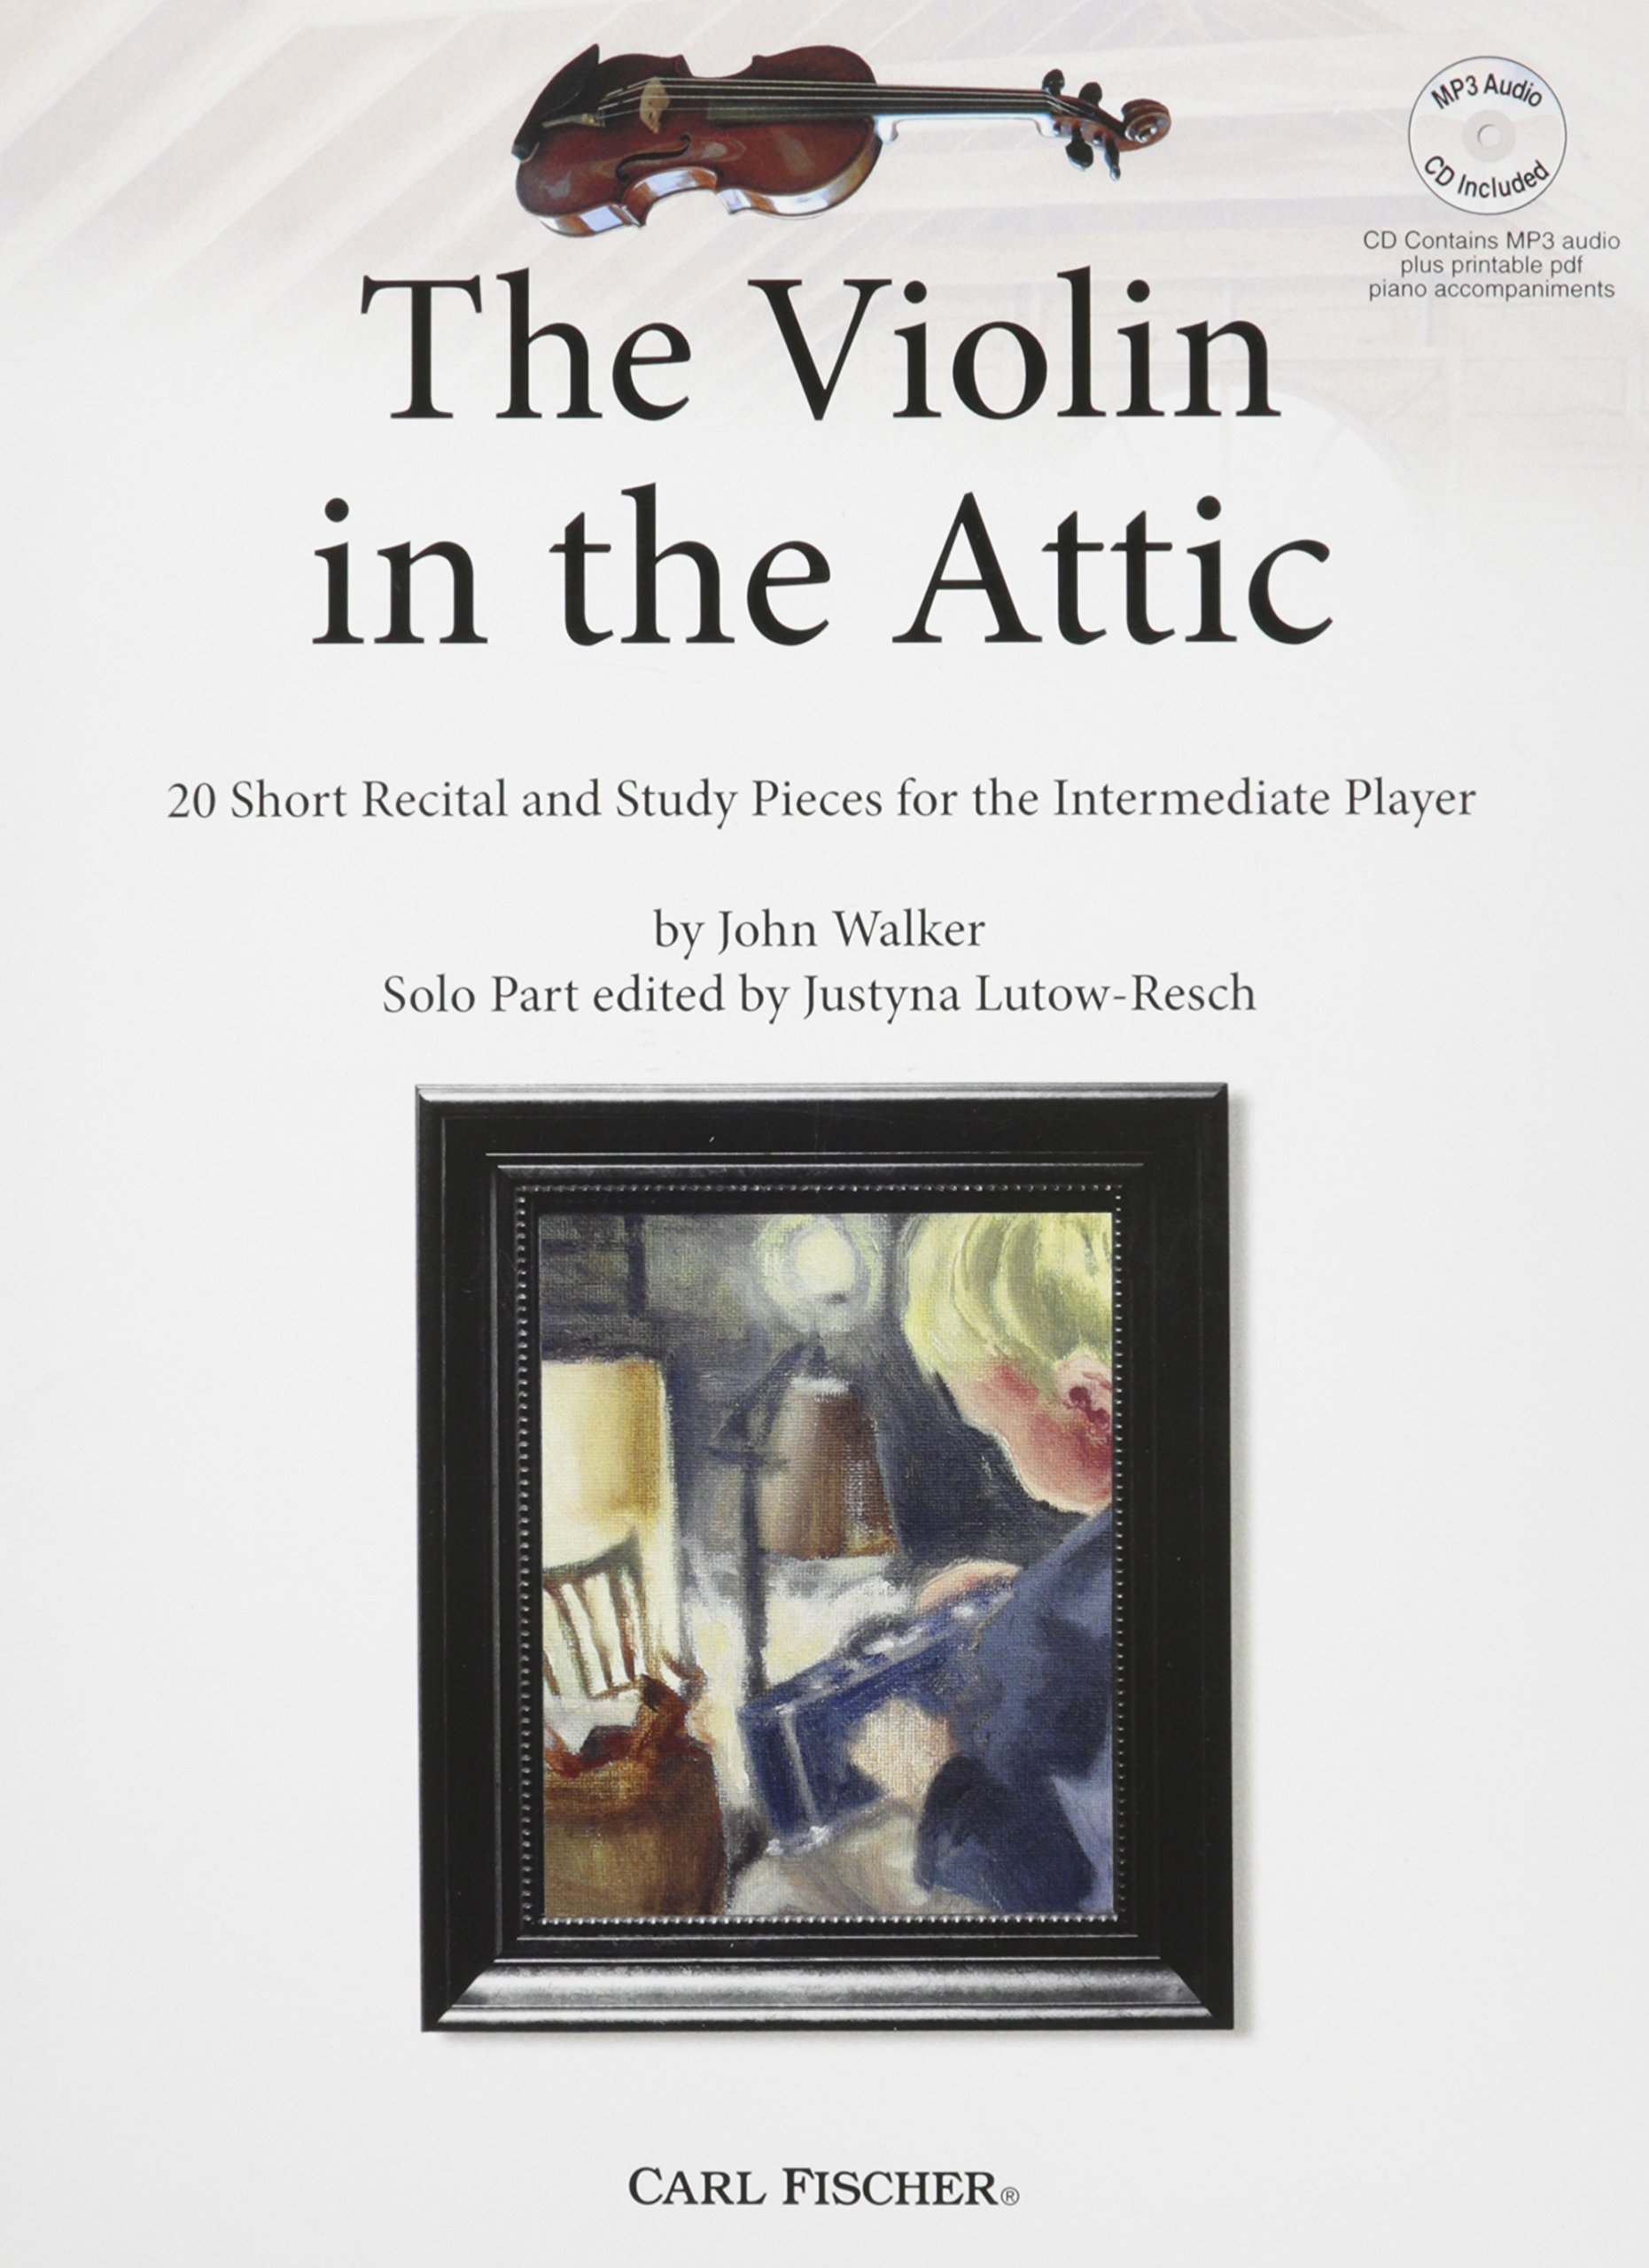 Download BF98 - The Violin in the Attic: 20 Short Recital and Study Pieces for the Intermediate Player pdf